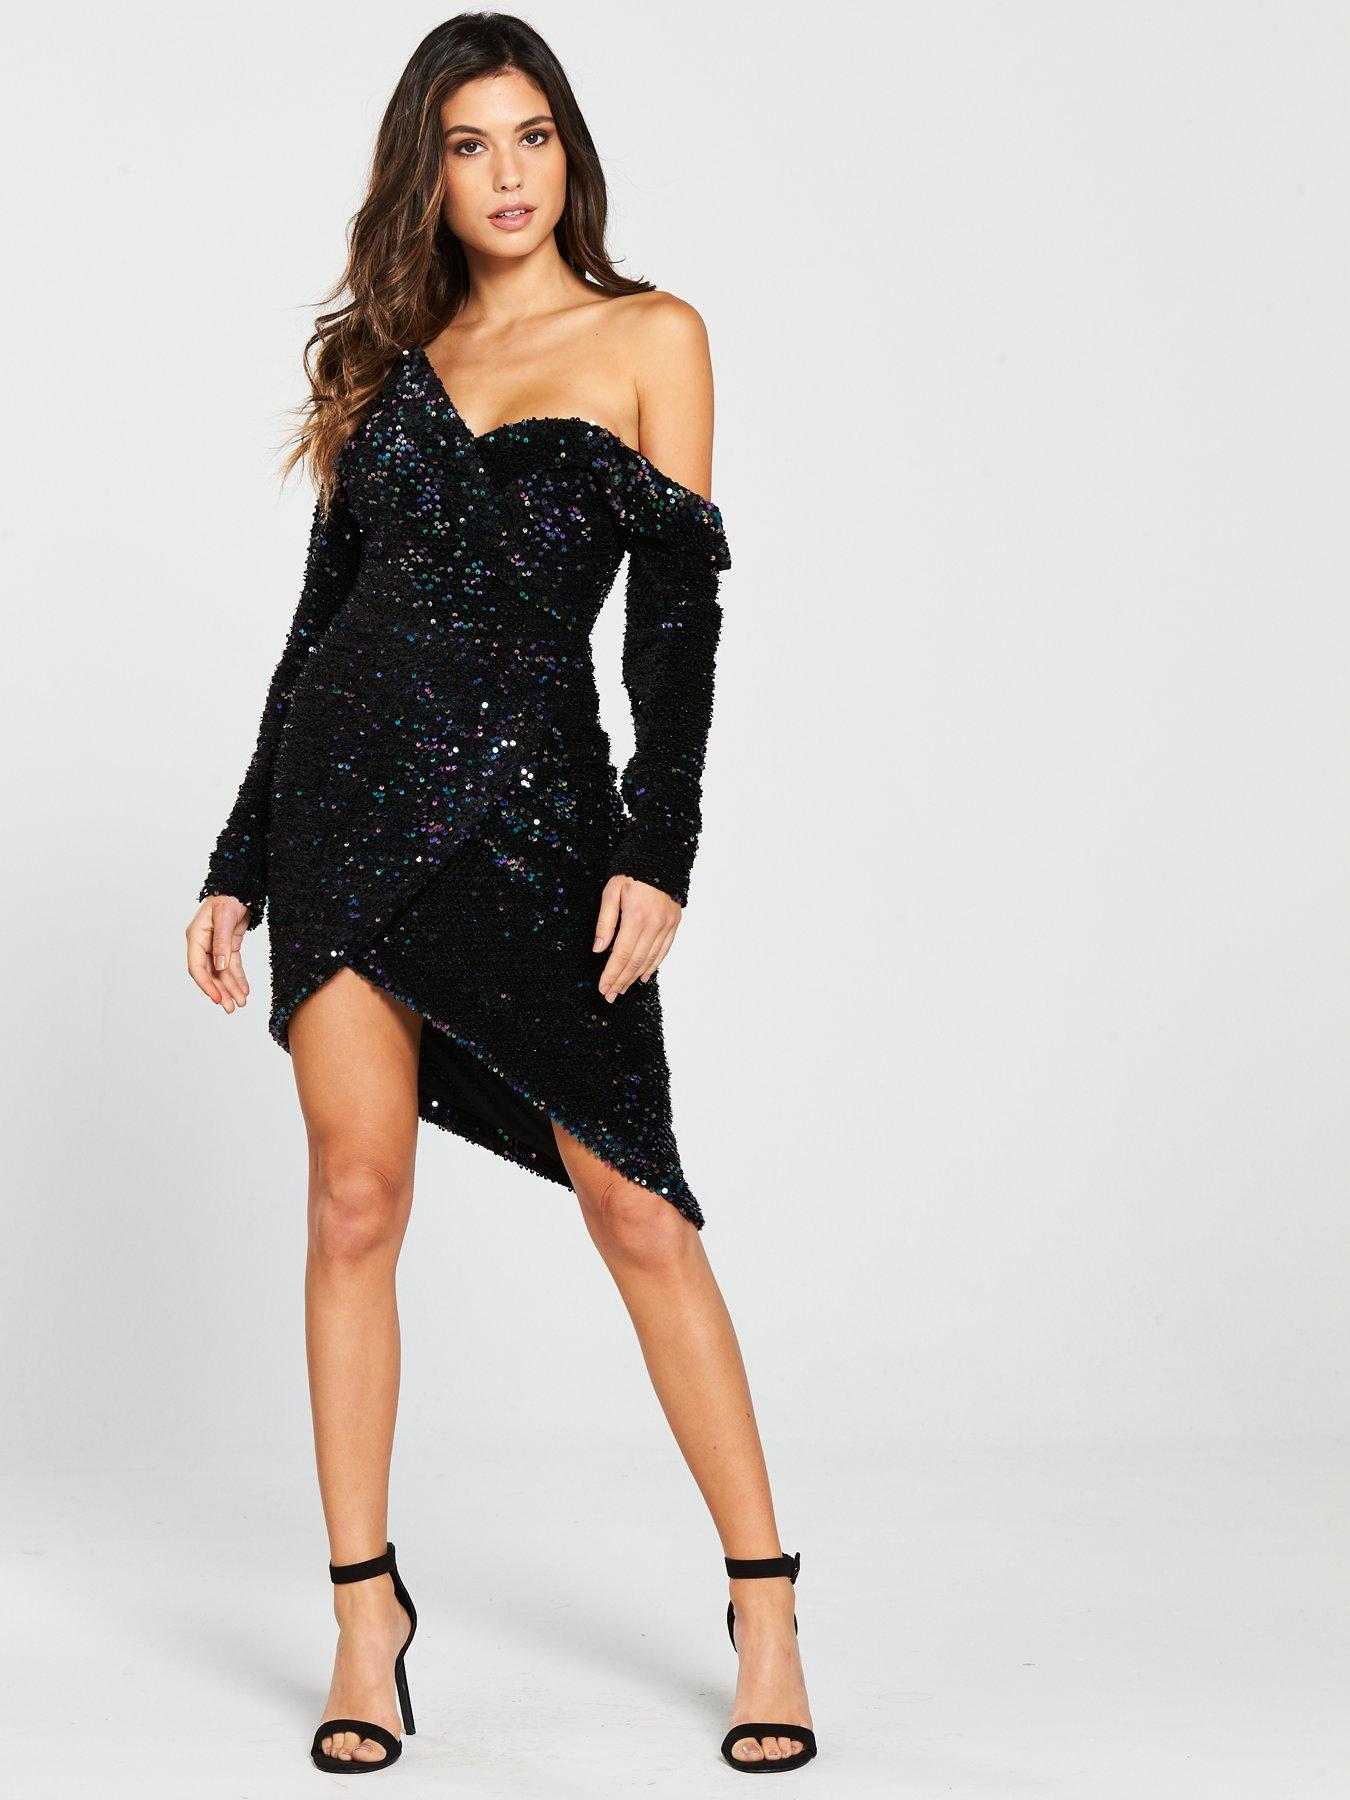 Blue Sequin Mini Dress